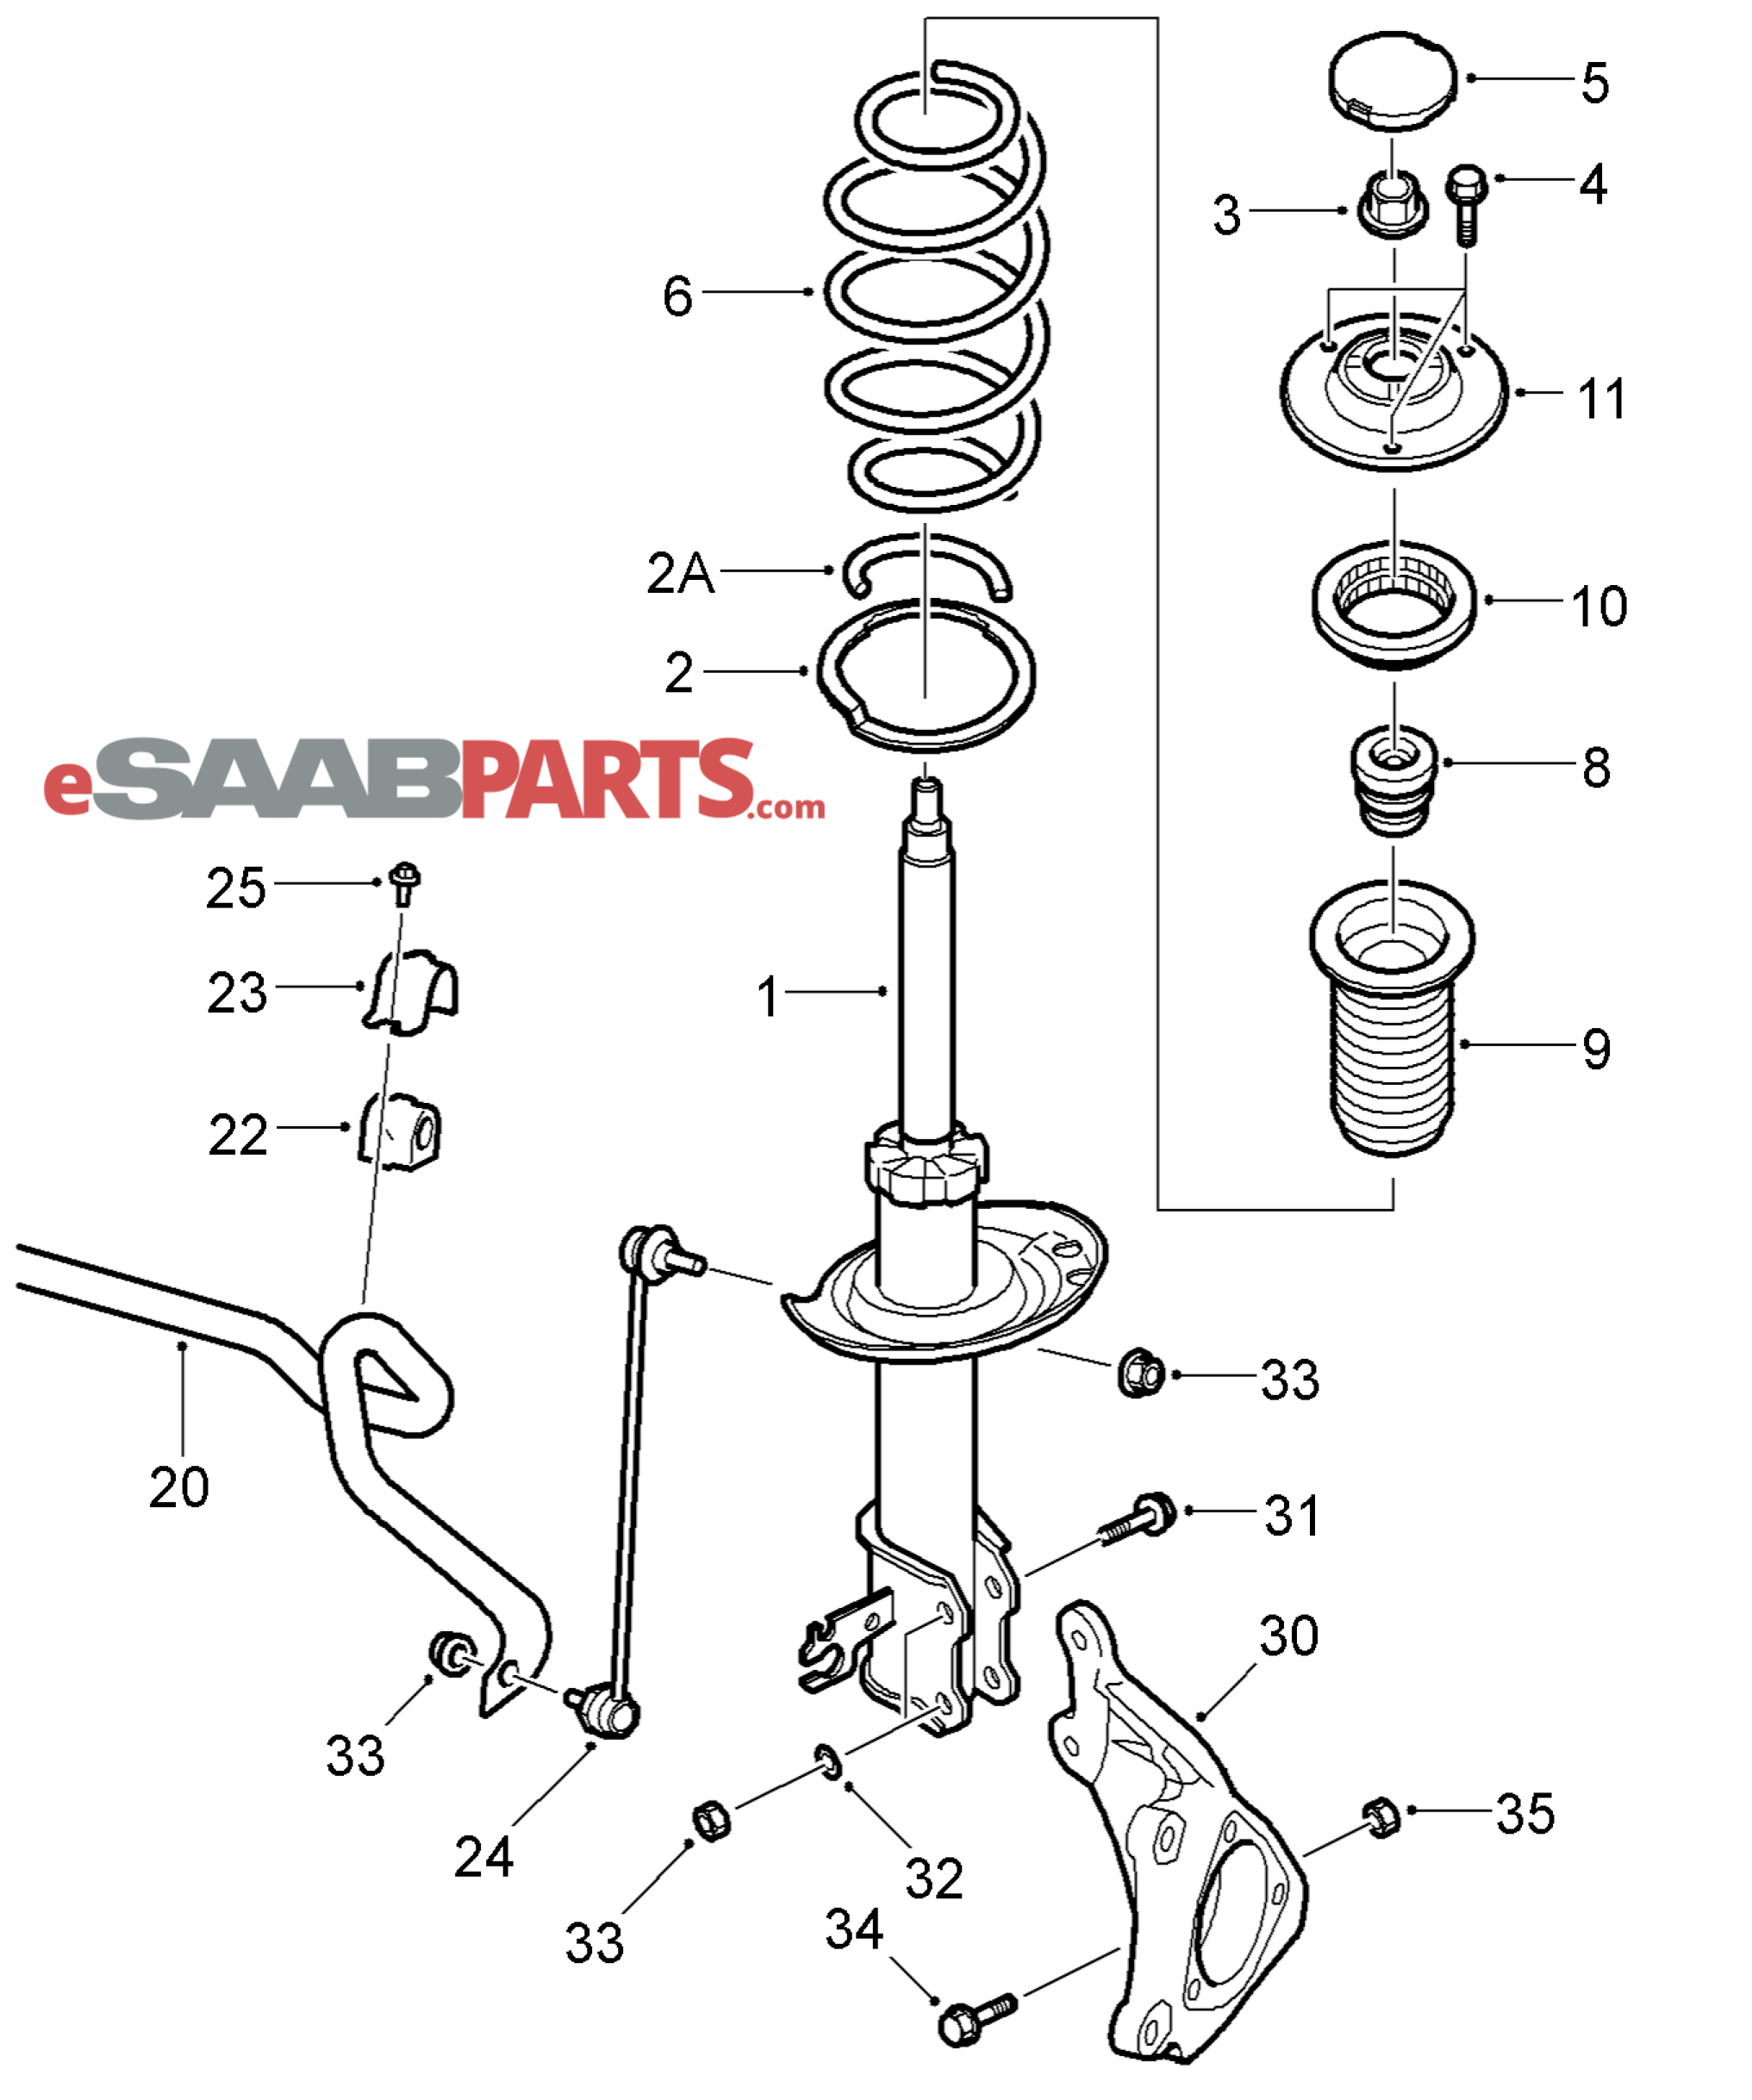 powerwinch wiring diagram with 03 Saab 9 3 Engine Diagram on Viewtopic in addition 12 Volt Winch Wiring Diagram moreover Warn Winch 2500 Diagram additionally 03 Saab 9 3 Engine Diagram further Coffing Hoist 2 Ton Wiring Diagram.